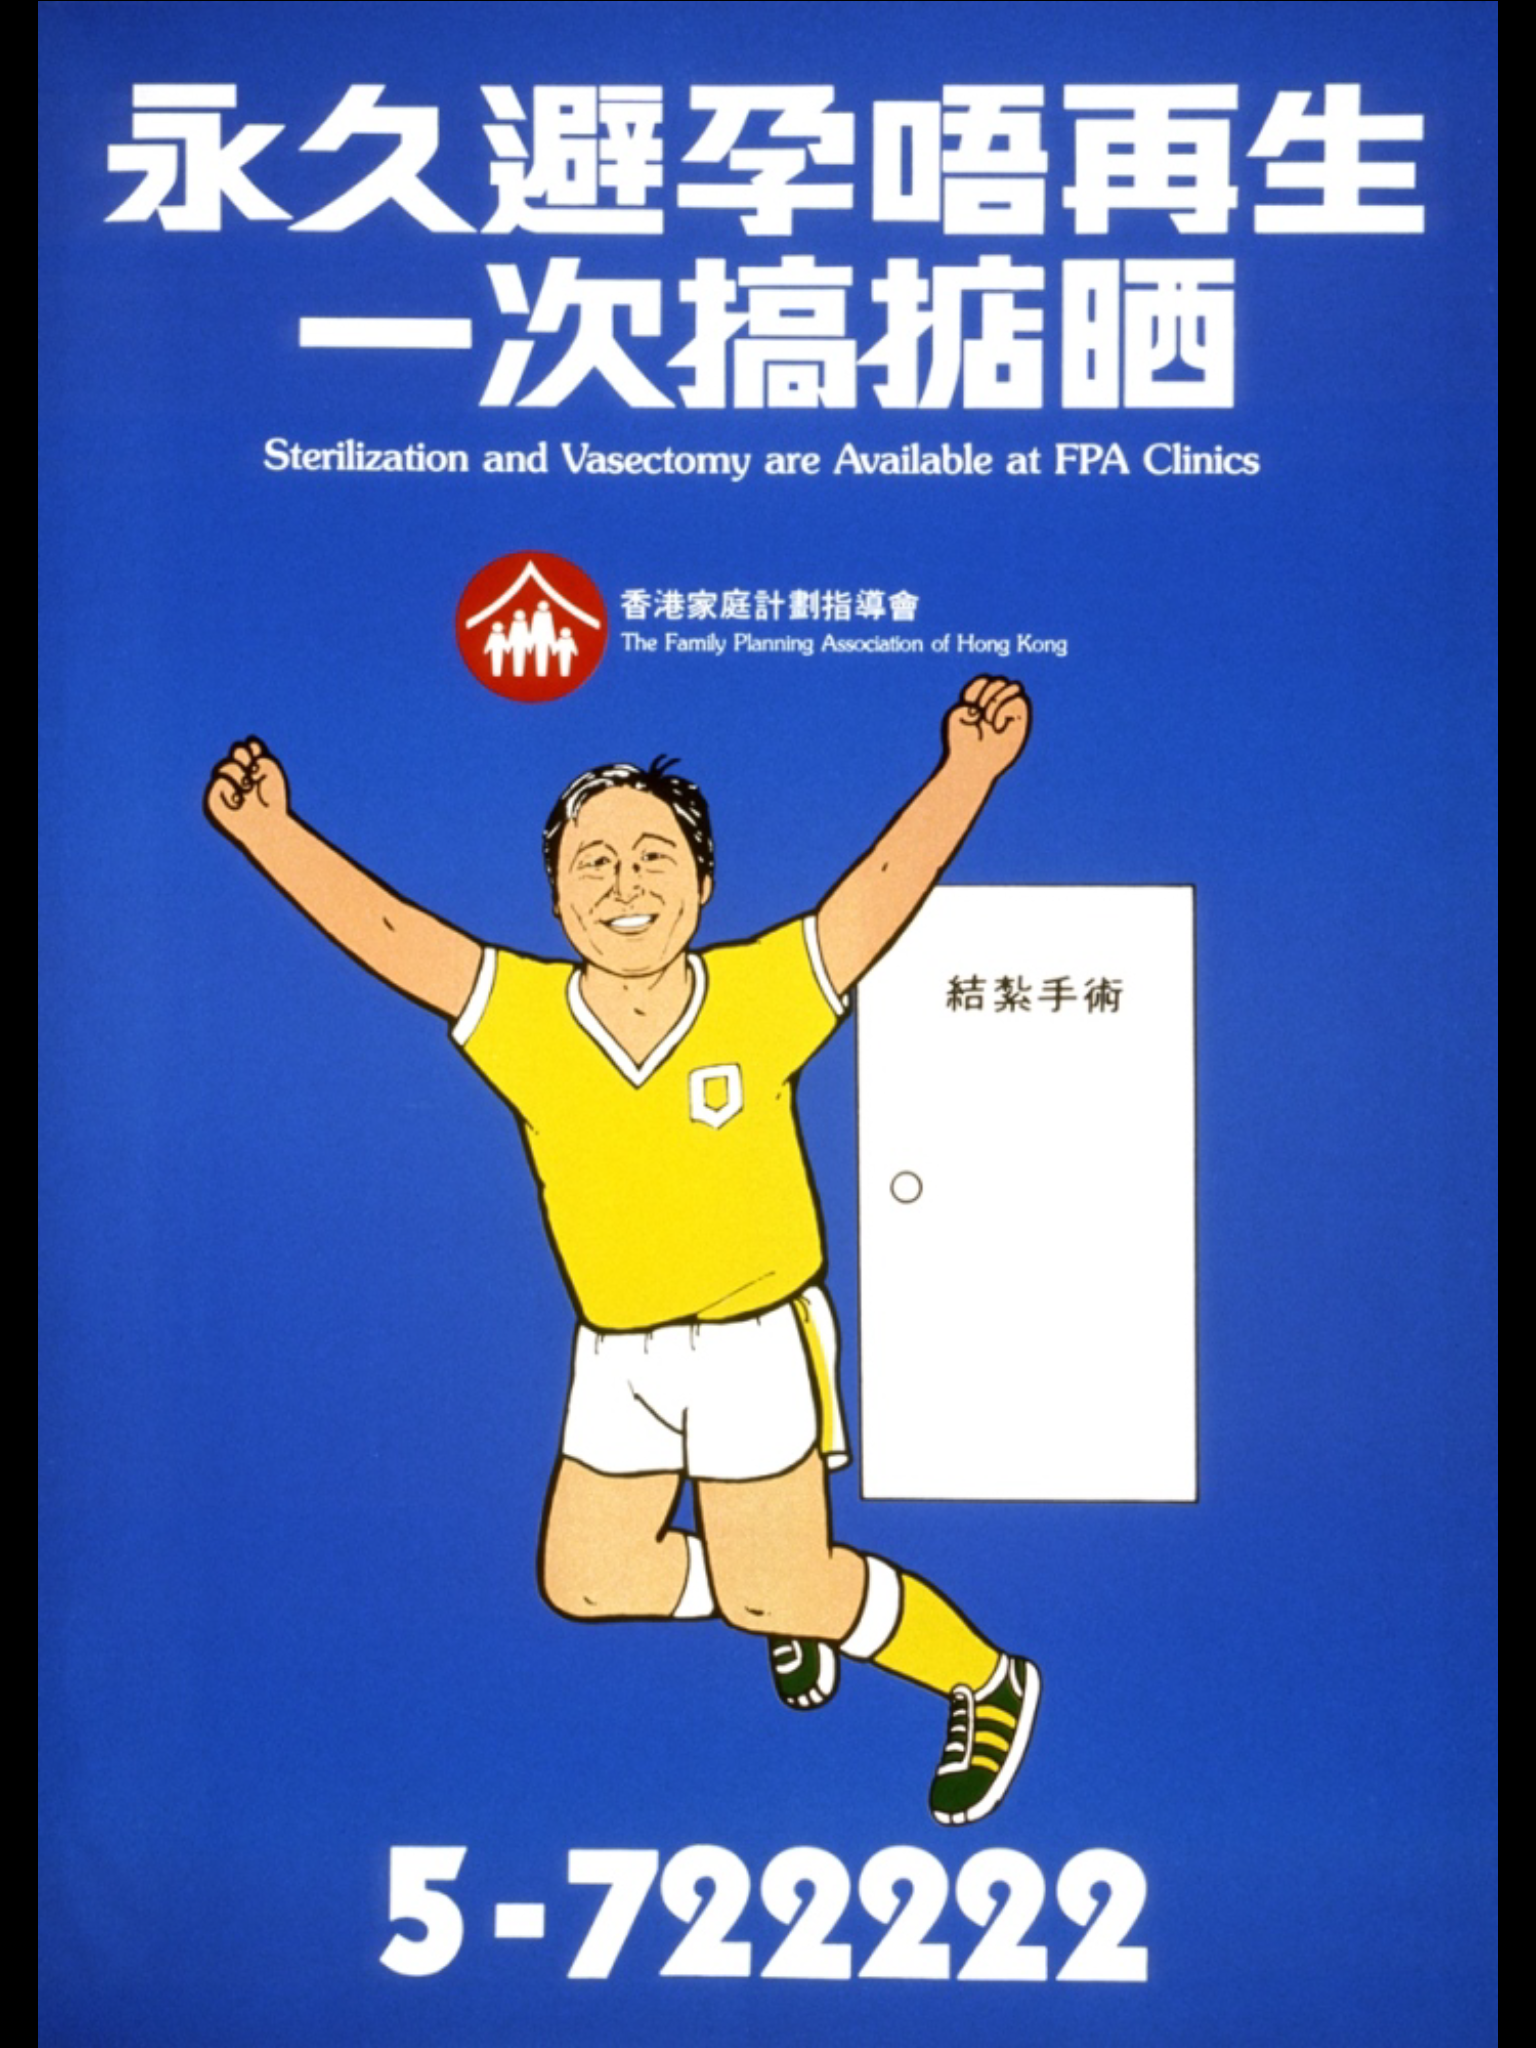 Pin By Lai Chi Ho Tommy On Dd Poster Chinese Culture Branding Vasectomy